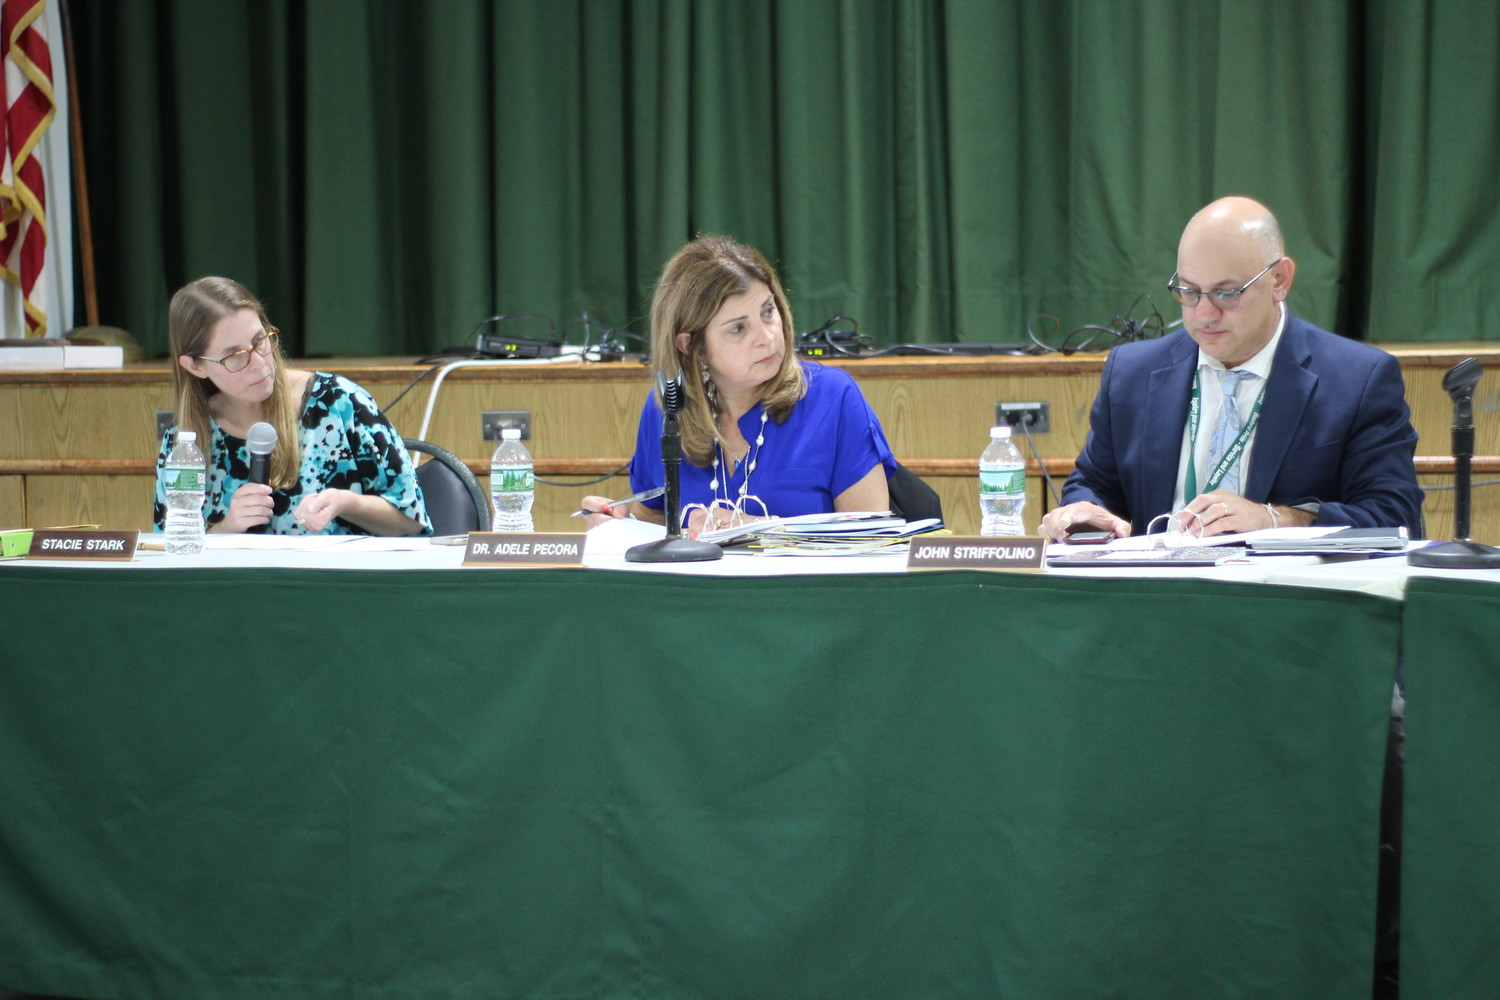 Seaford School District Board of Education member Stacie Stark, Superintendent Dr. Adele Pecora and John Striffolino, the Assistant Superintendent for K-12 Curriculum, Instruction and Personnel, are members of the district's Security Guard Staffing Review Advisory Committee.